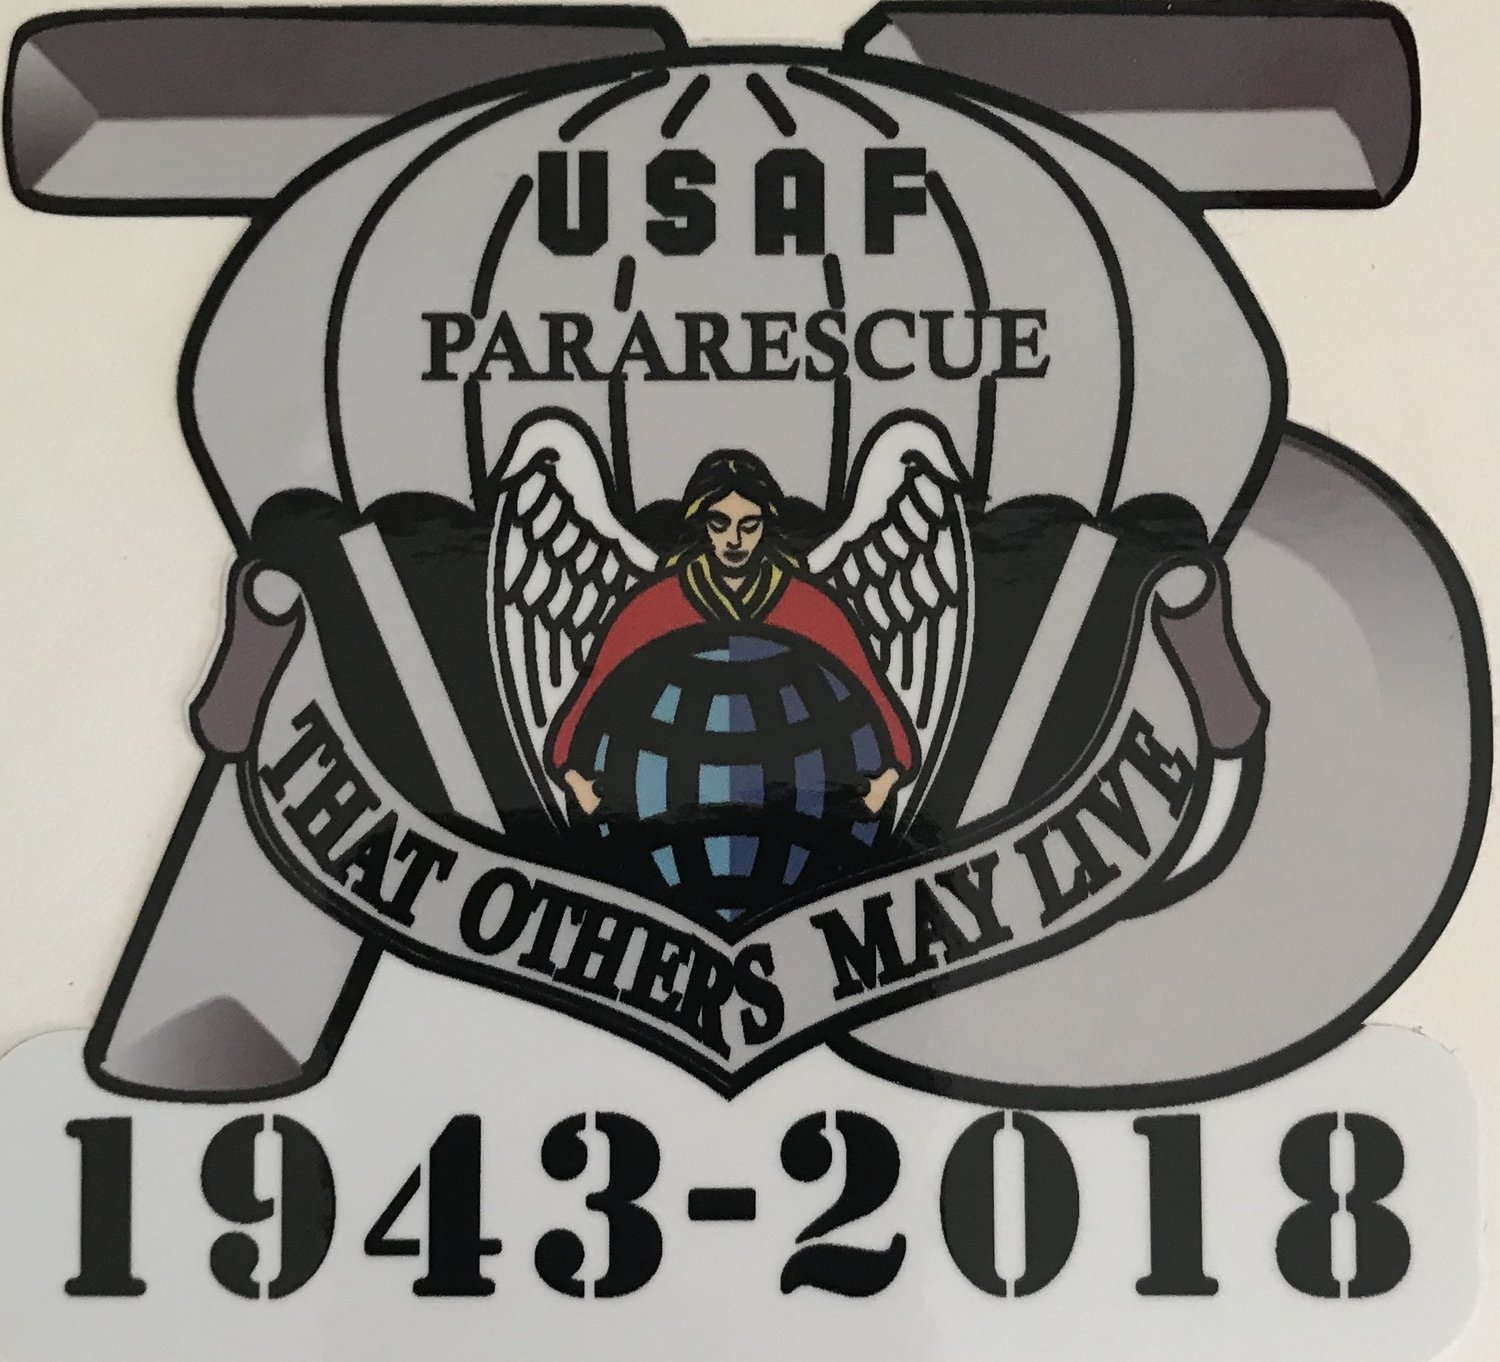 dsp/ ParaRescue 75th Anniversary Sticker (2 stickers)